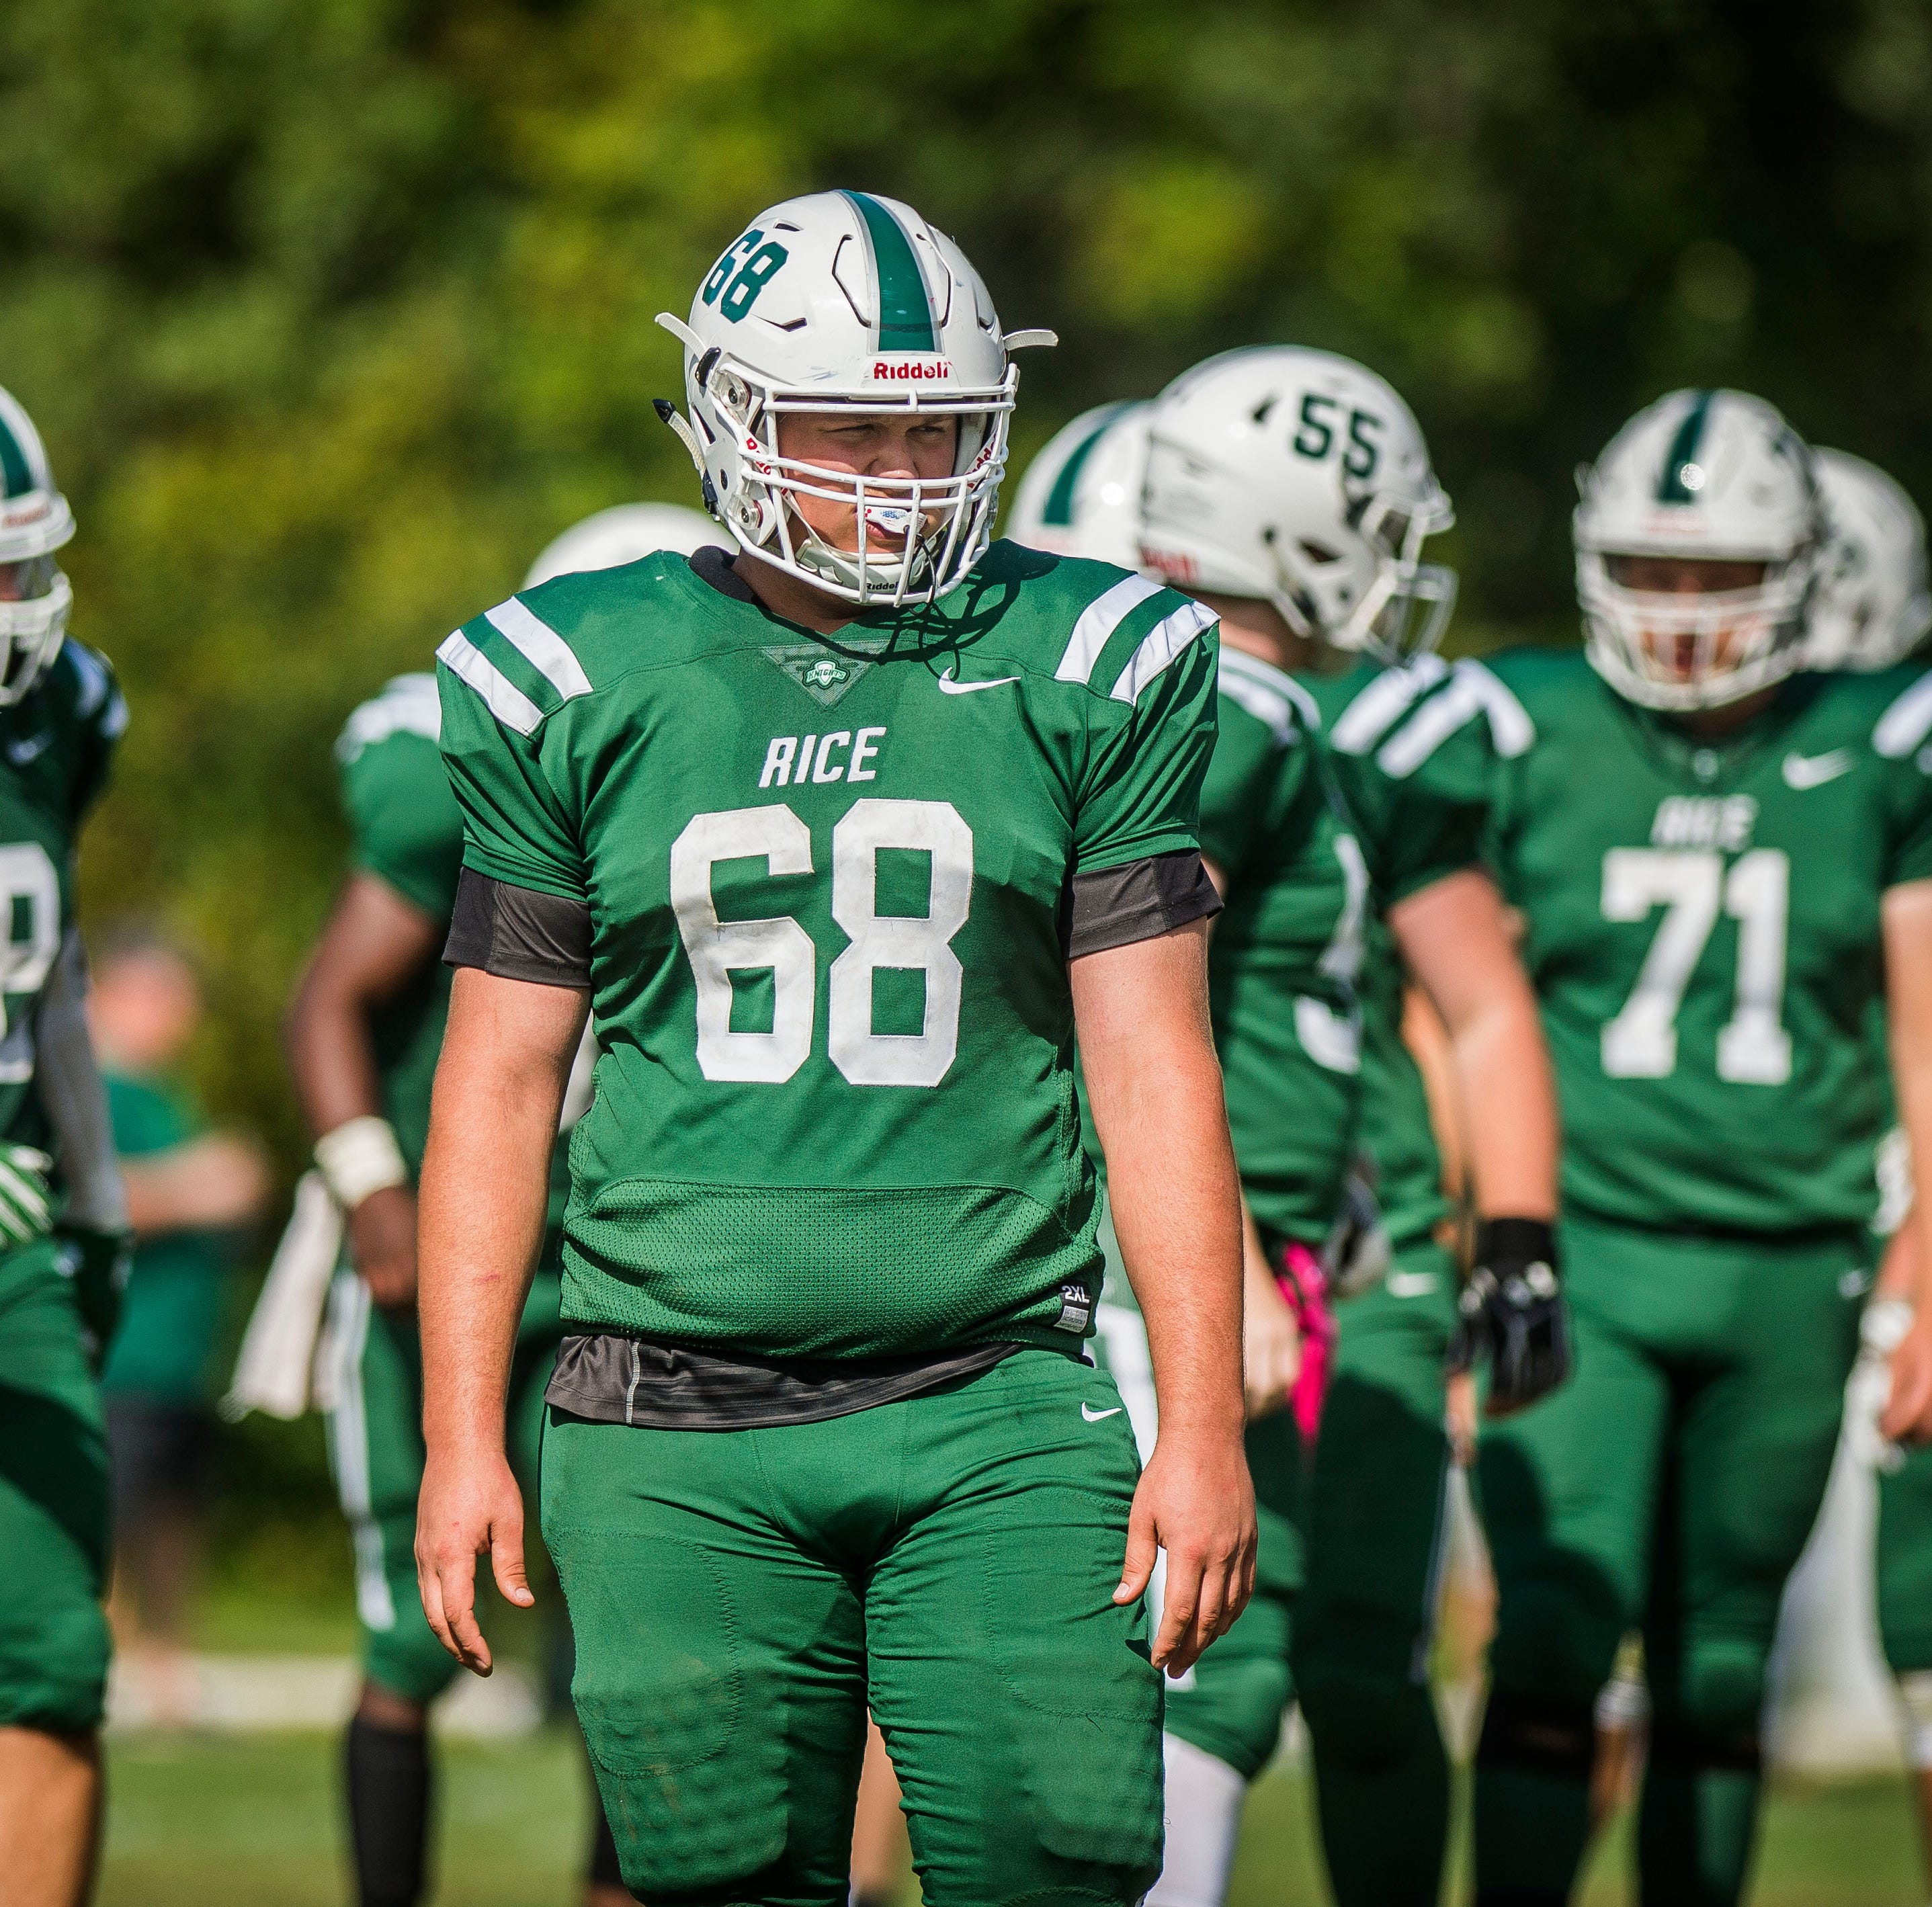 Vermont high school football: Imposing linemen anchor Rice's defense